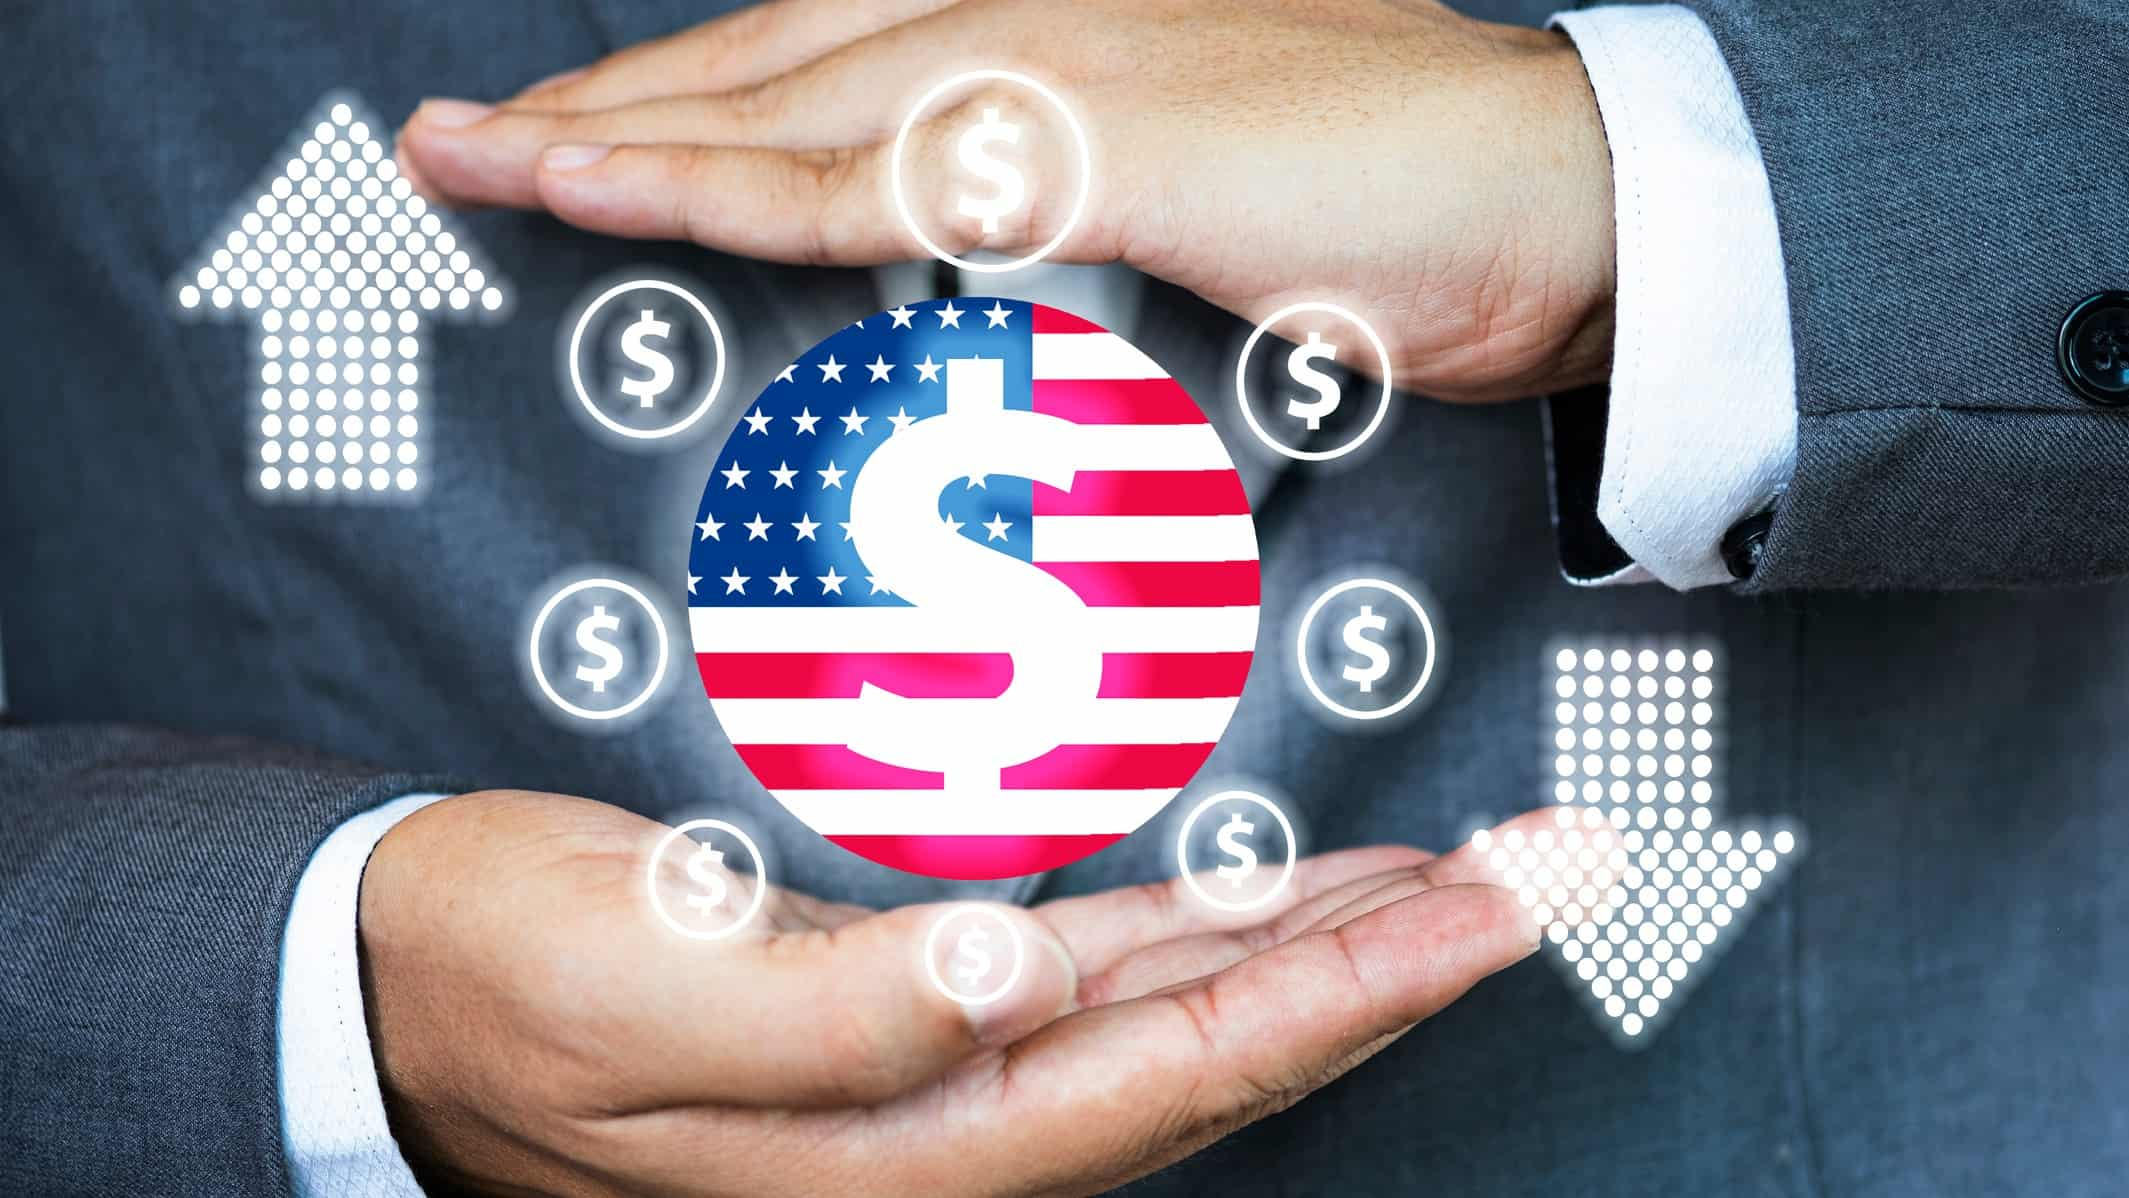 A businesman's hands surround a circular graphic with a United States flag and dollar signs, indicating buying and selling US shares